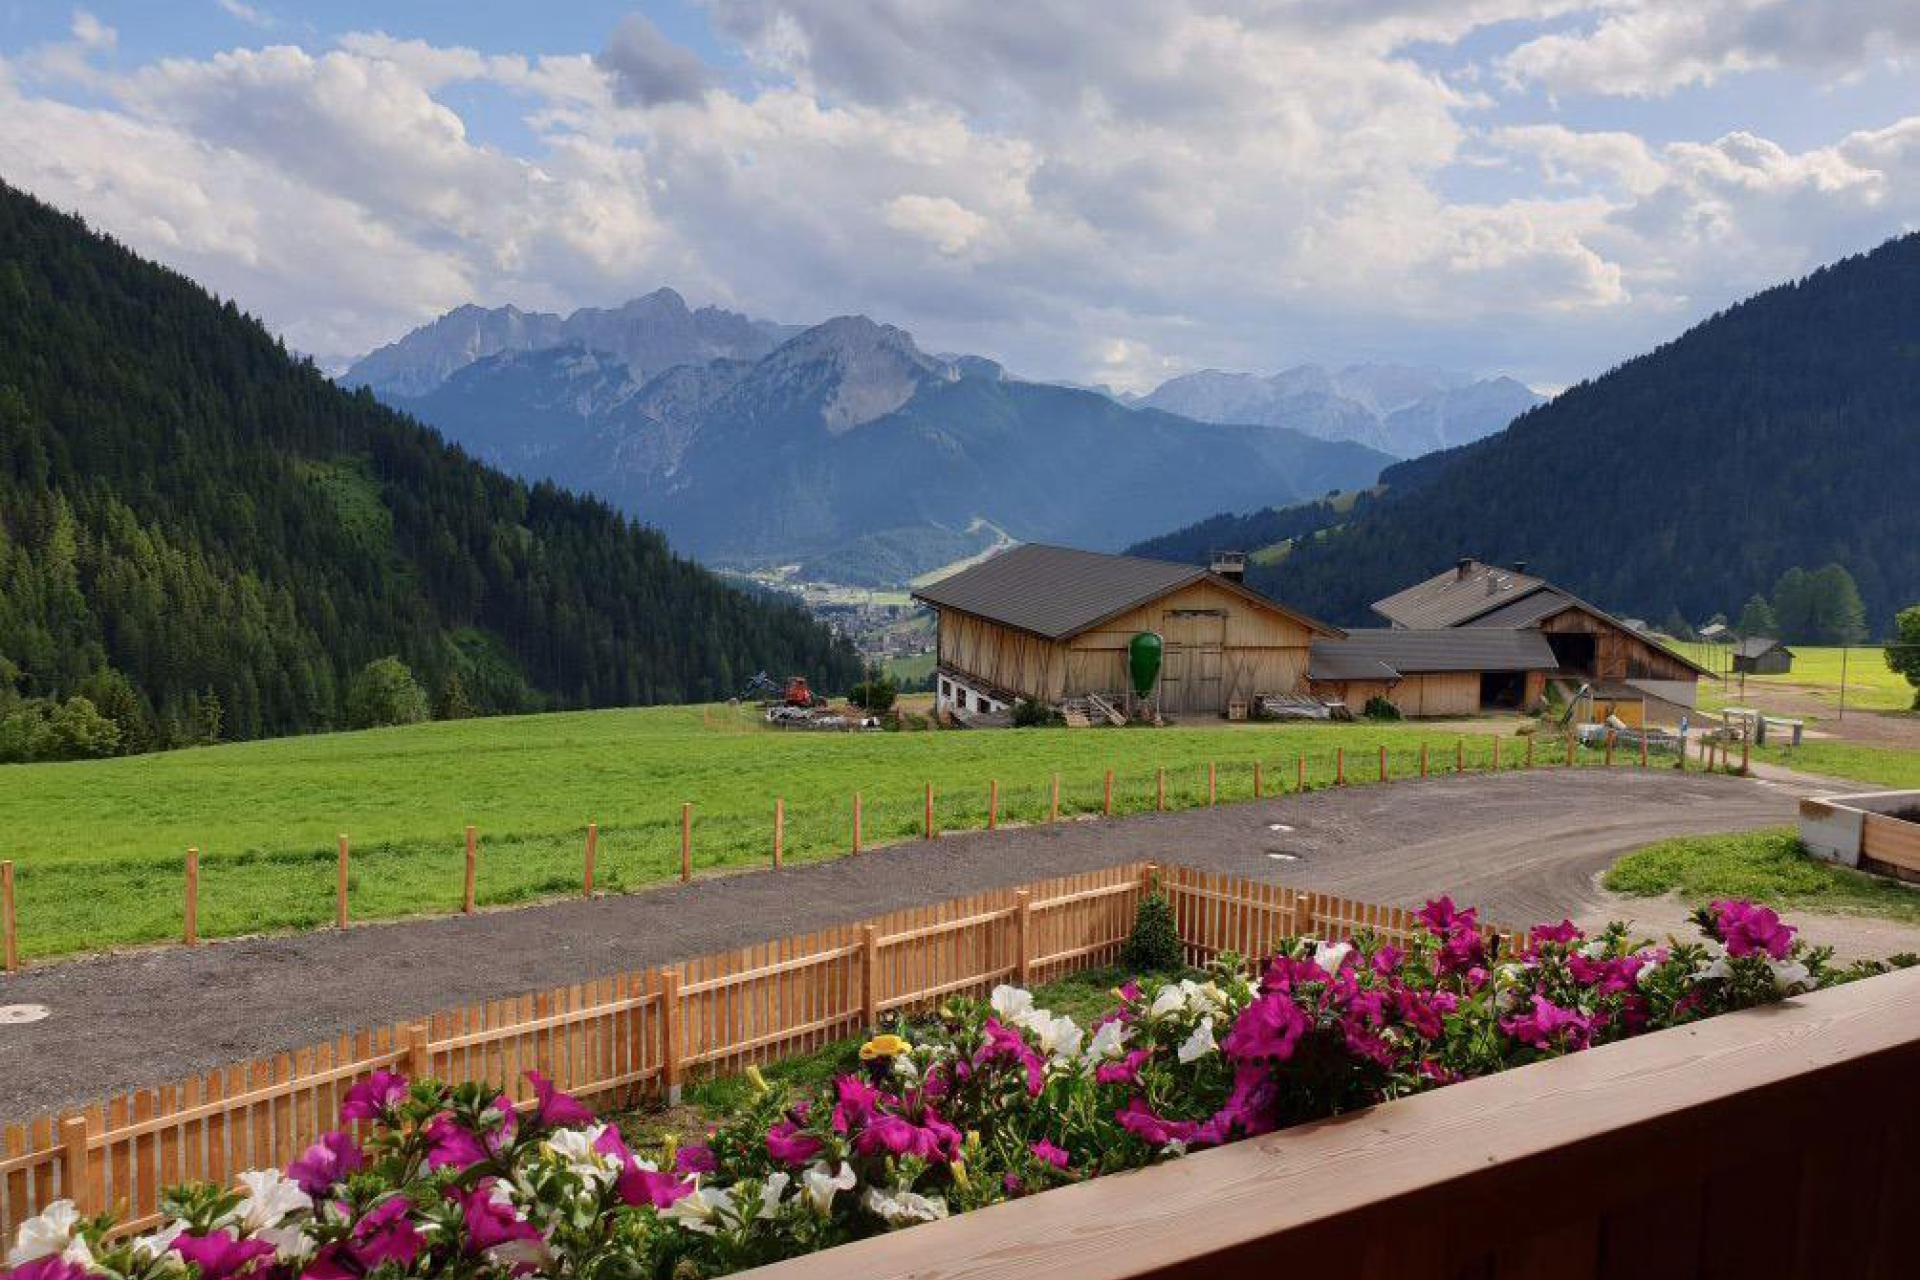 Agriturismo Dolomites Apartments in a friendly farmhouse in the Dolomites